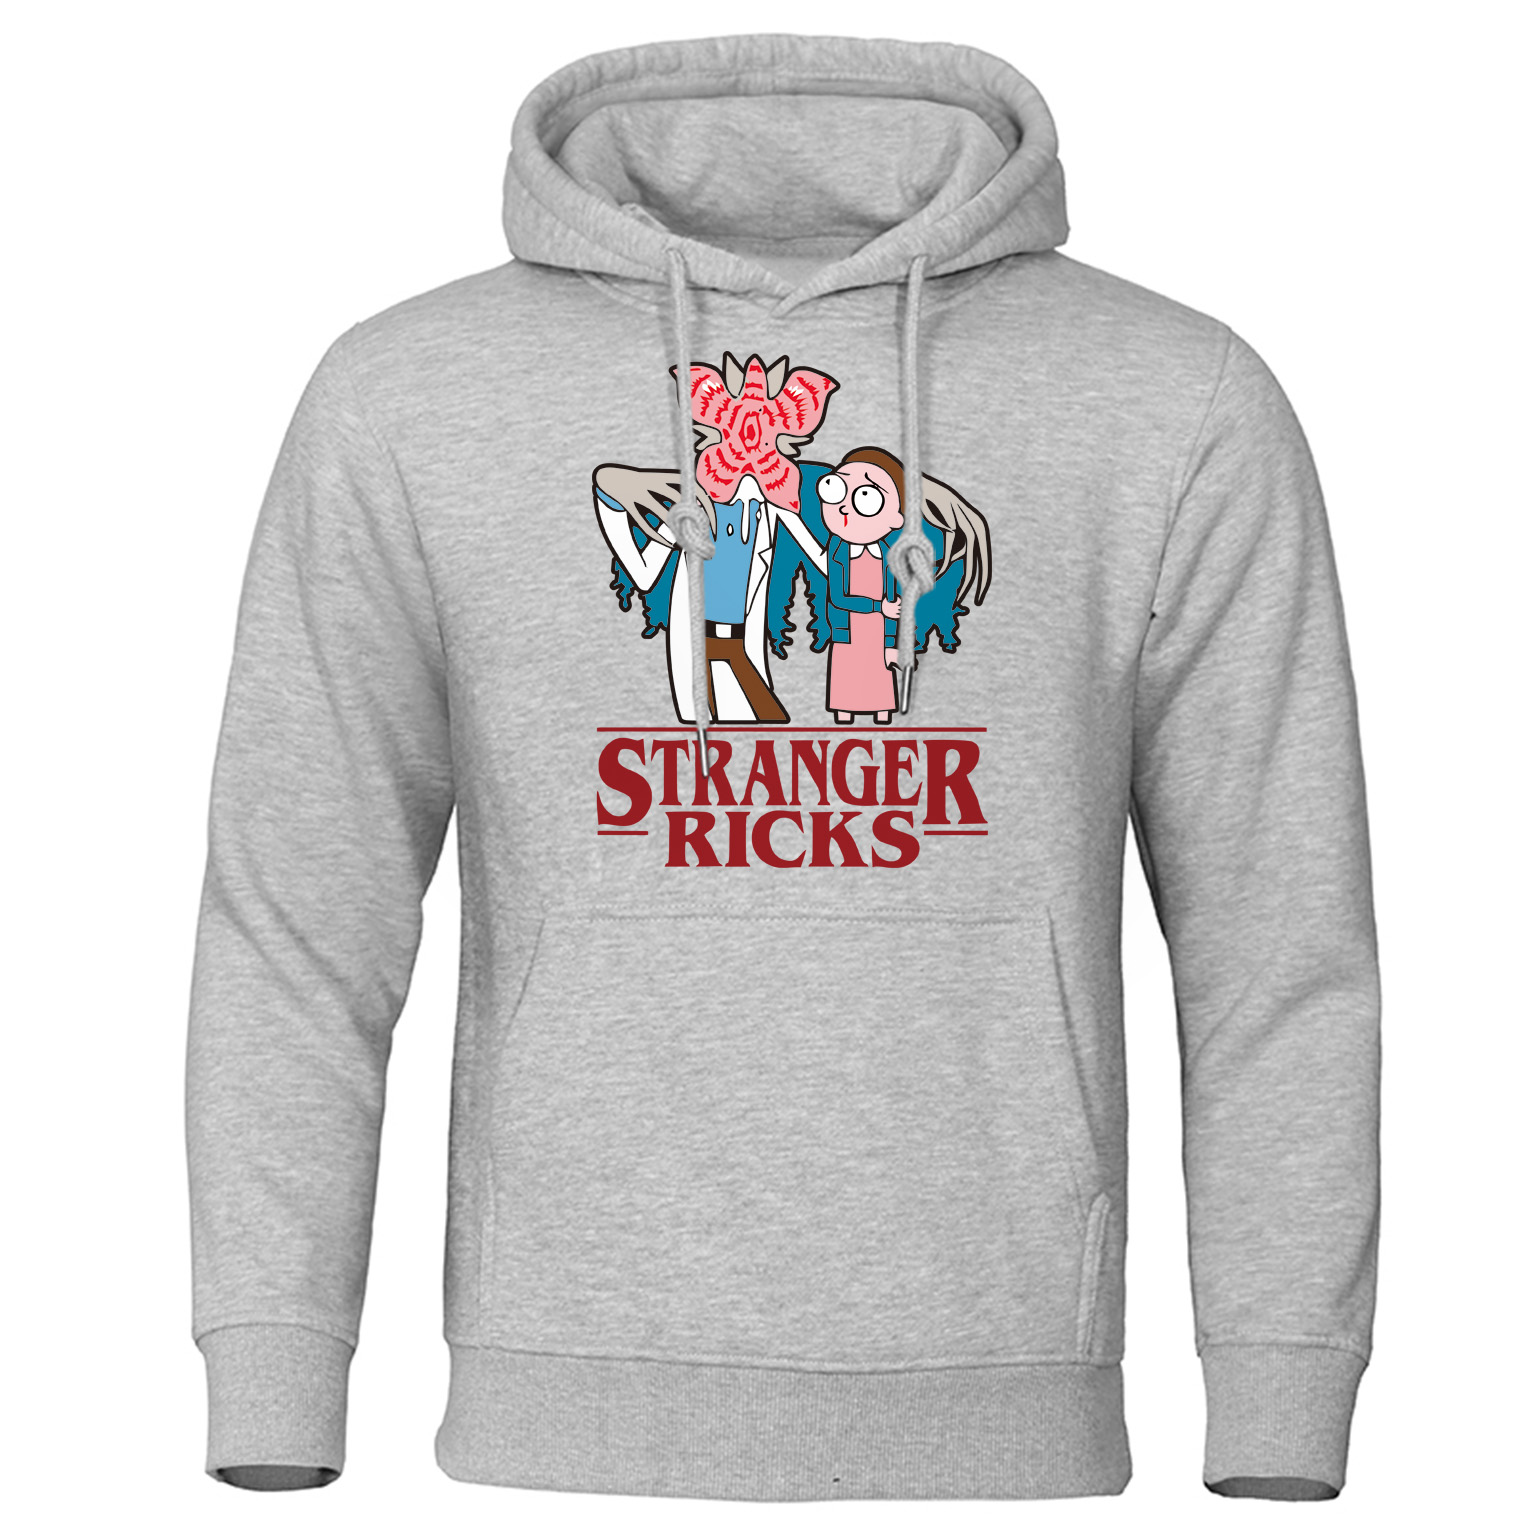 Stranger Things Hoodie Men Rick And Morty Funny Print 2019 Autumn Fleece Warm Hooded Sweatshirt Fashion Mens Pullover Streetwear